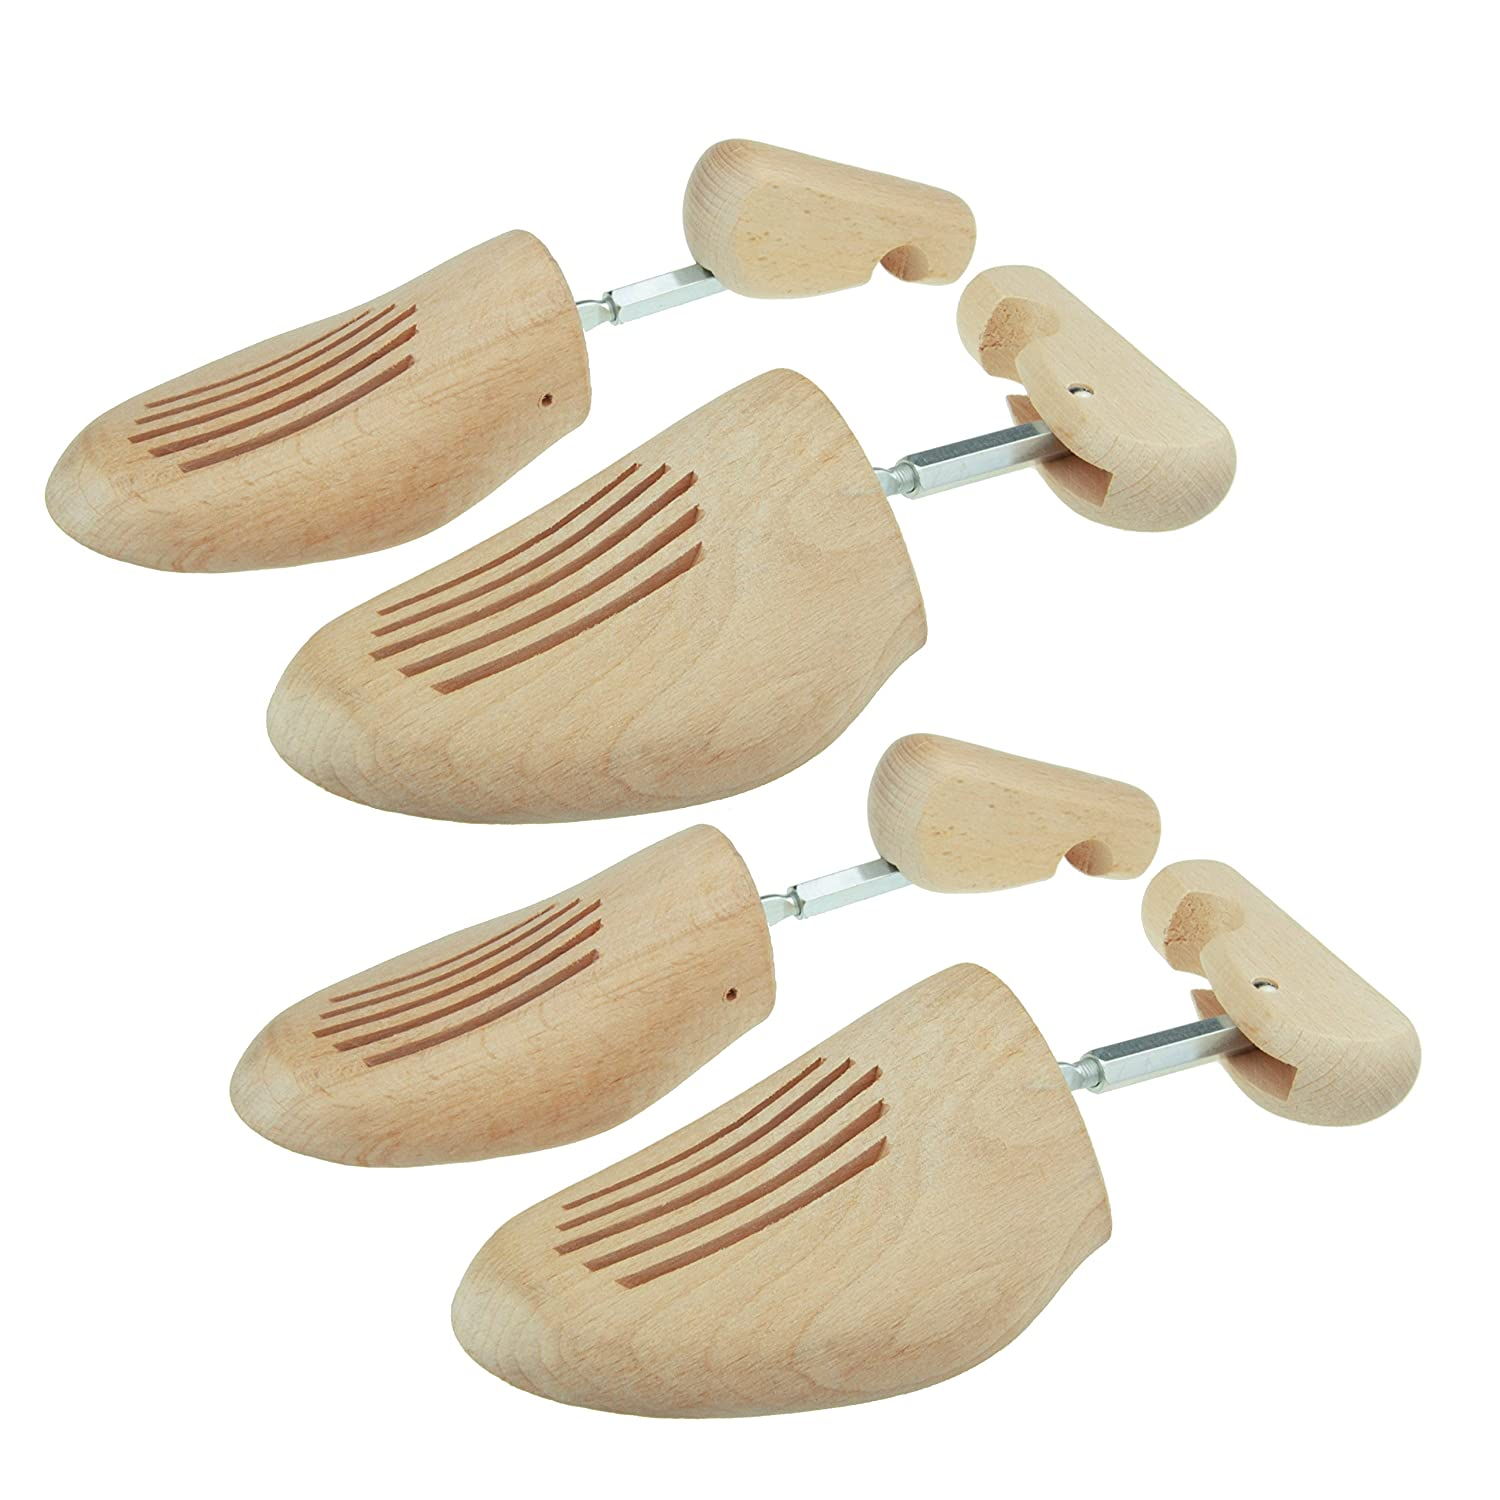 Max No. 3 Premium shoe trees out of beech wood, by MTS shoecare (Set 2 pairs), made in Germany